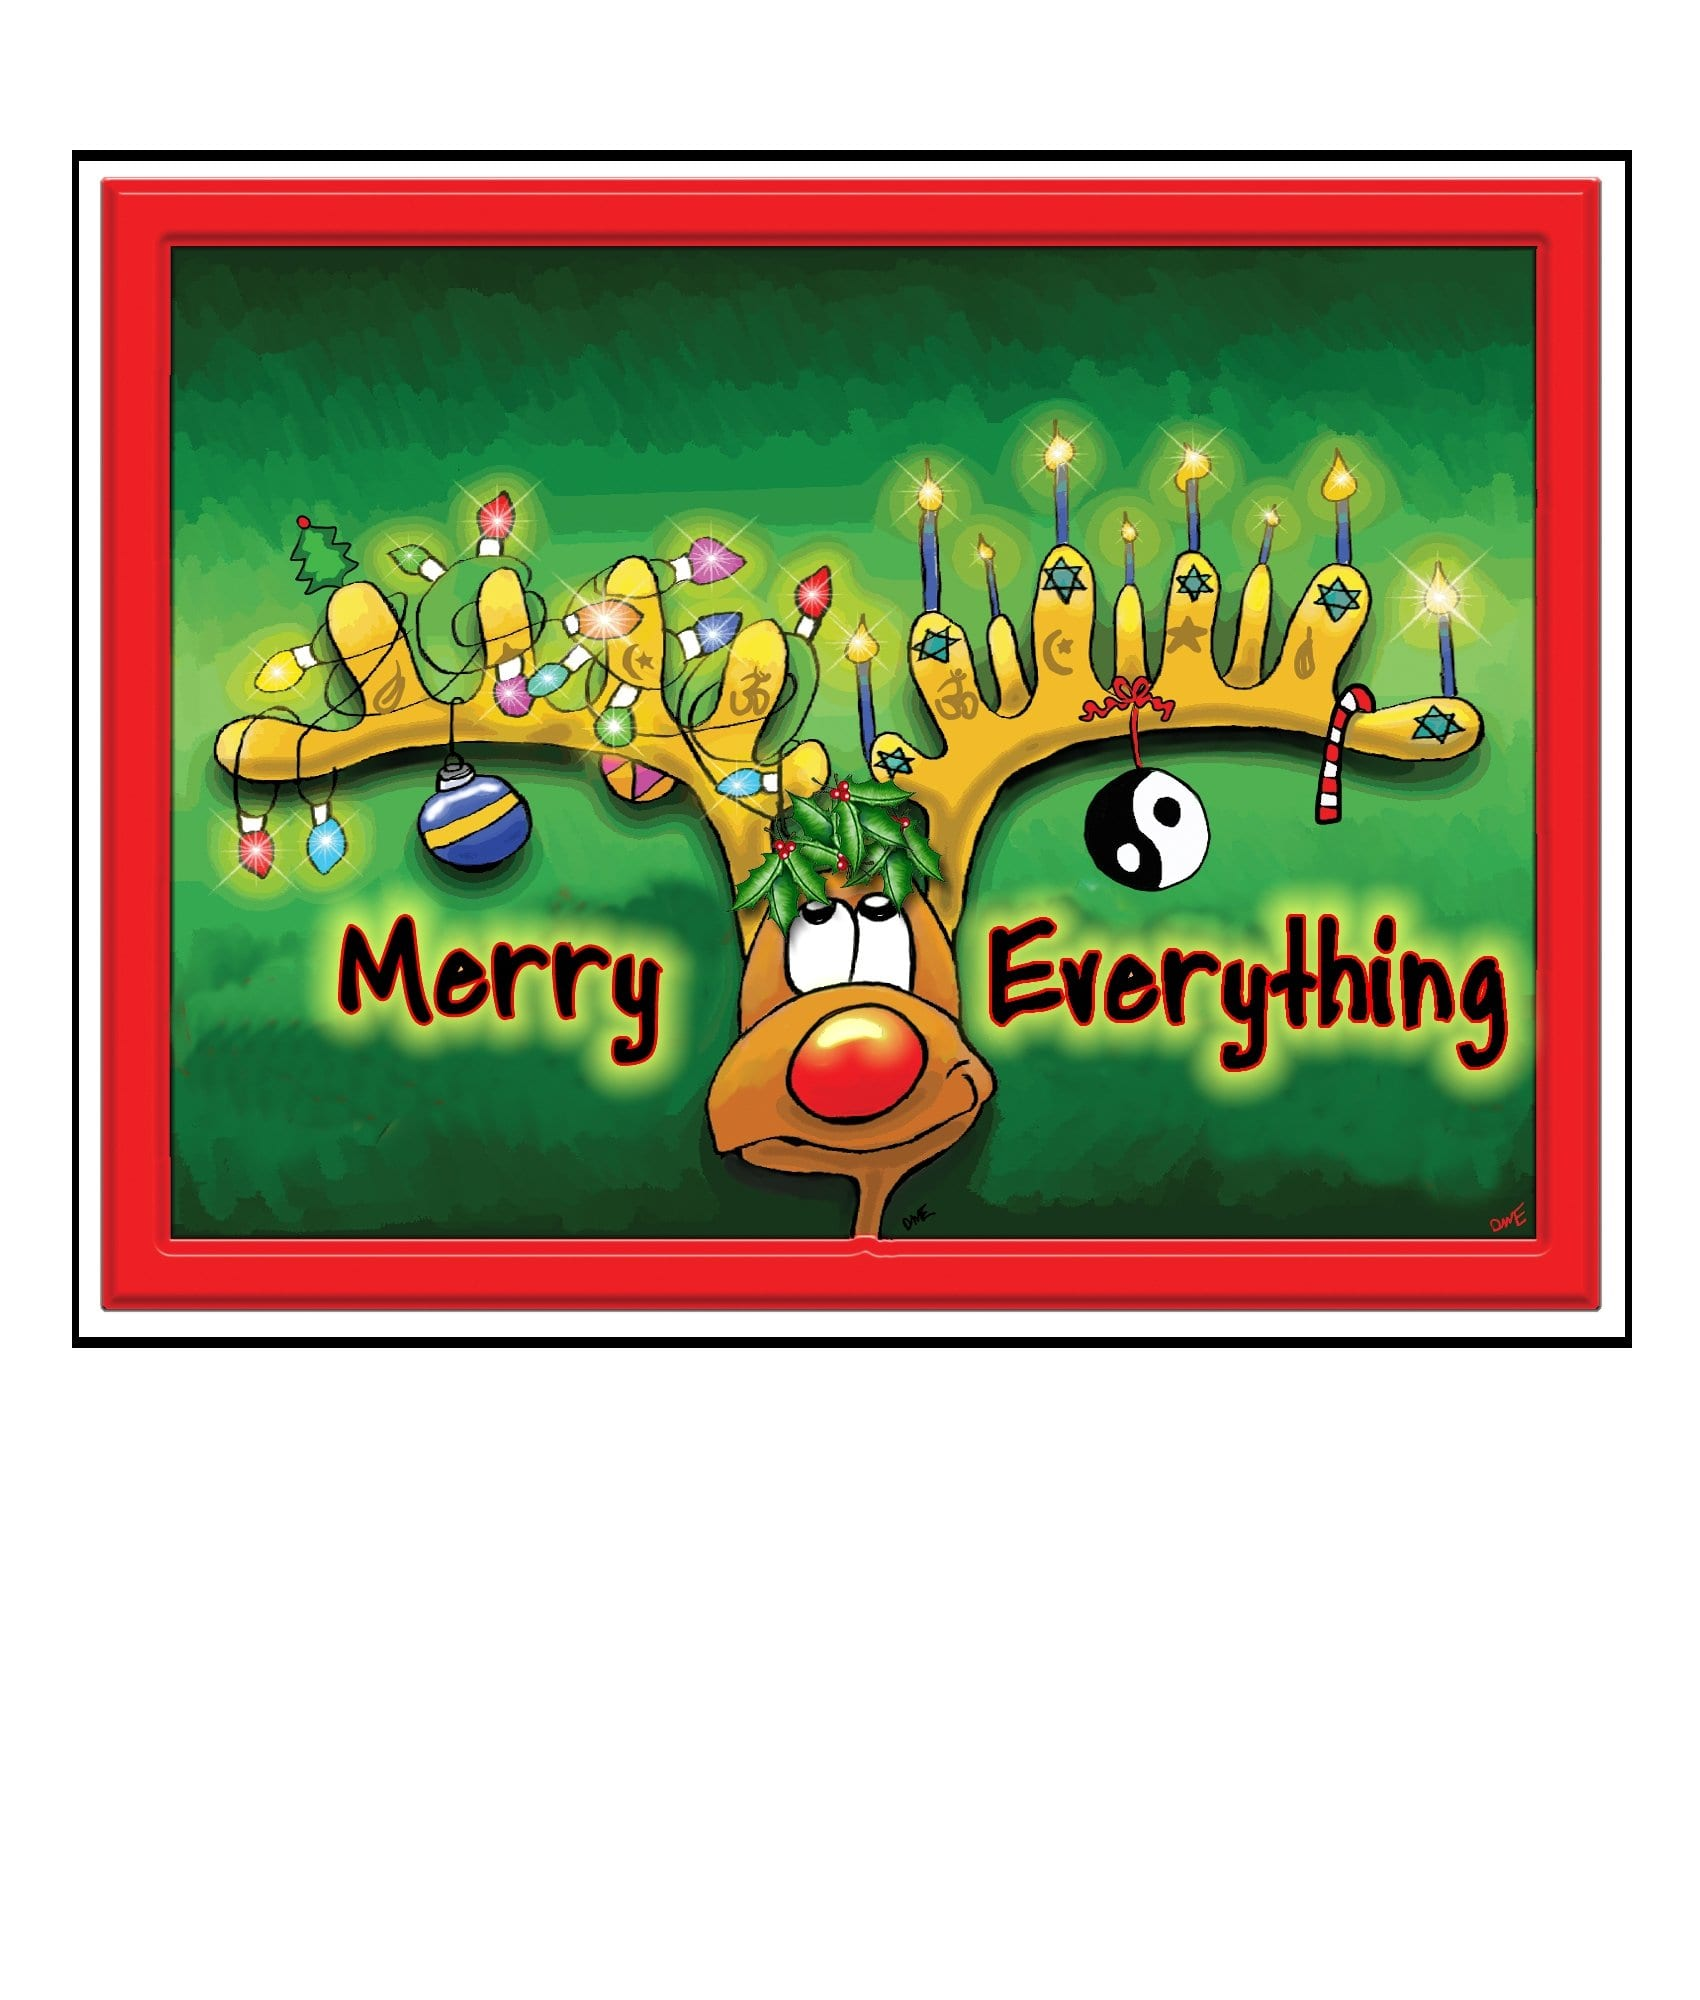 Holiday greeting cards the great cosmic happy ass card co holiday greeting cards m4hsunfo